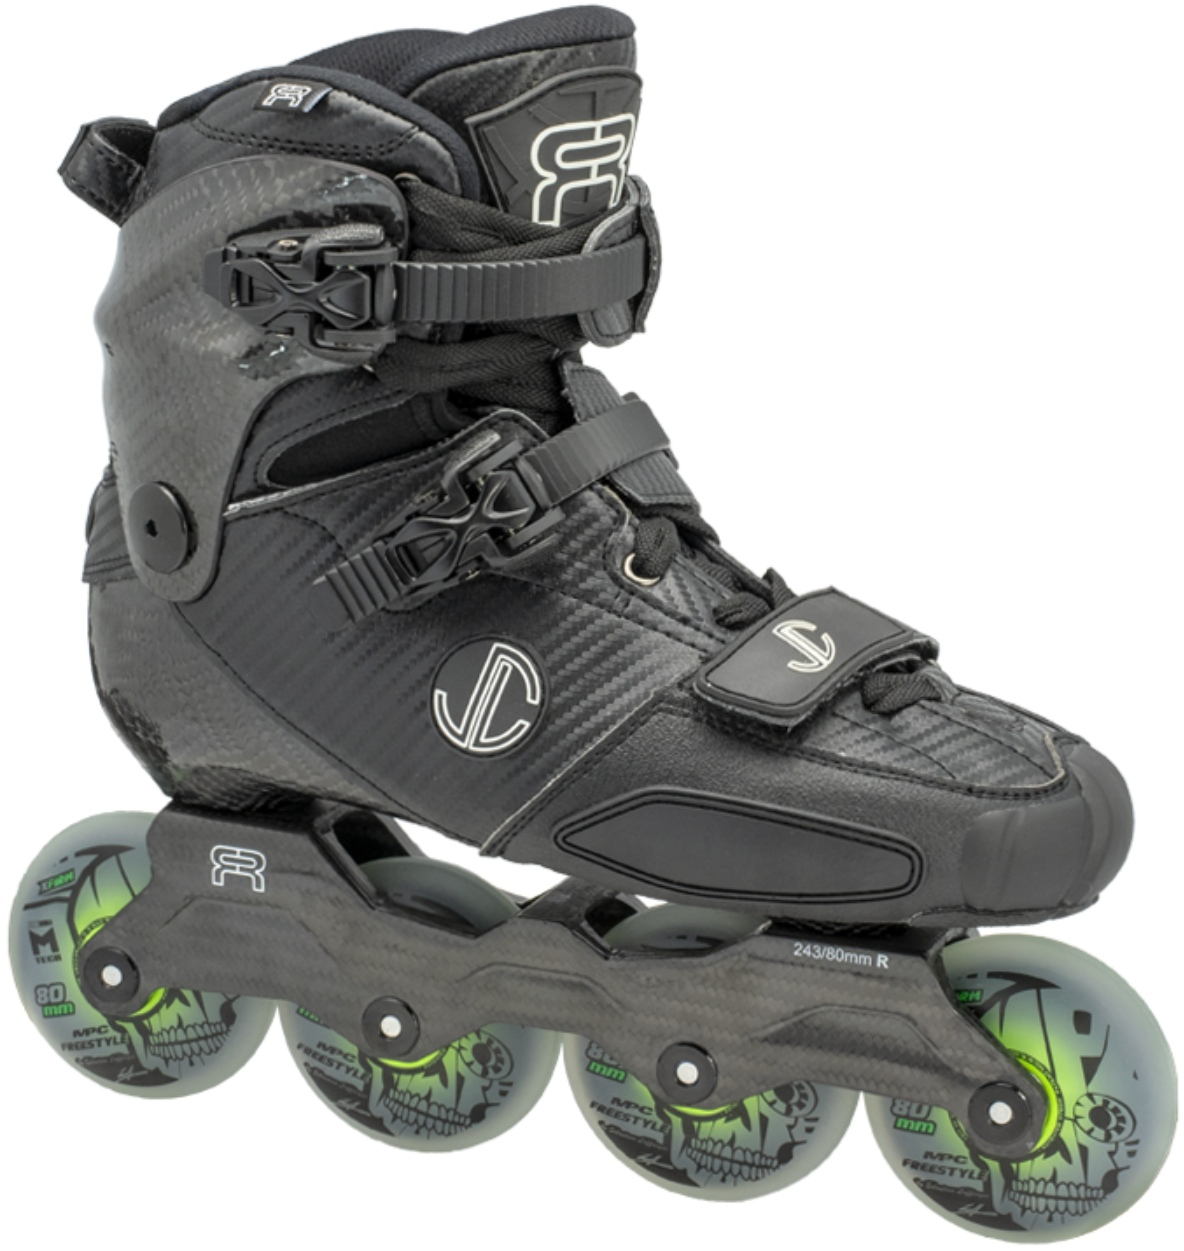 FR SL Carbon skate with 80 mm dual density freestyle wheels for slalom tricks